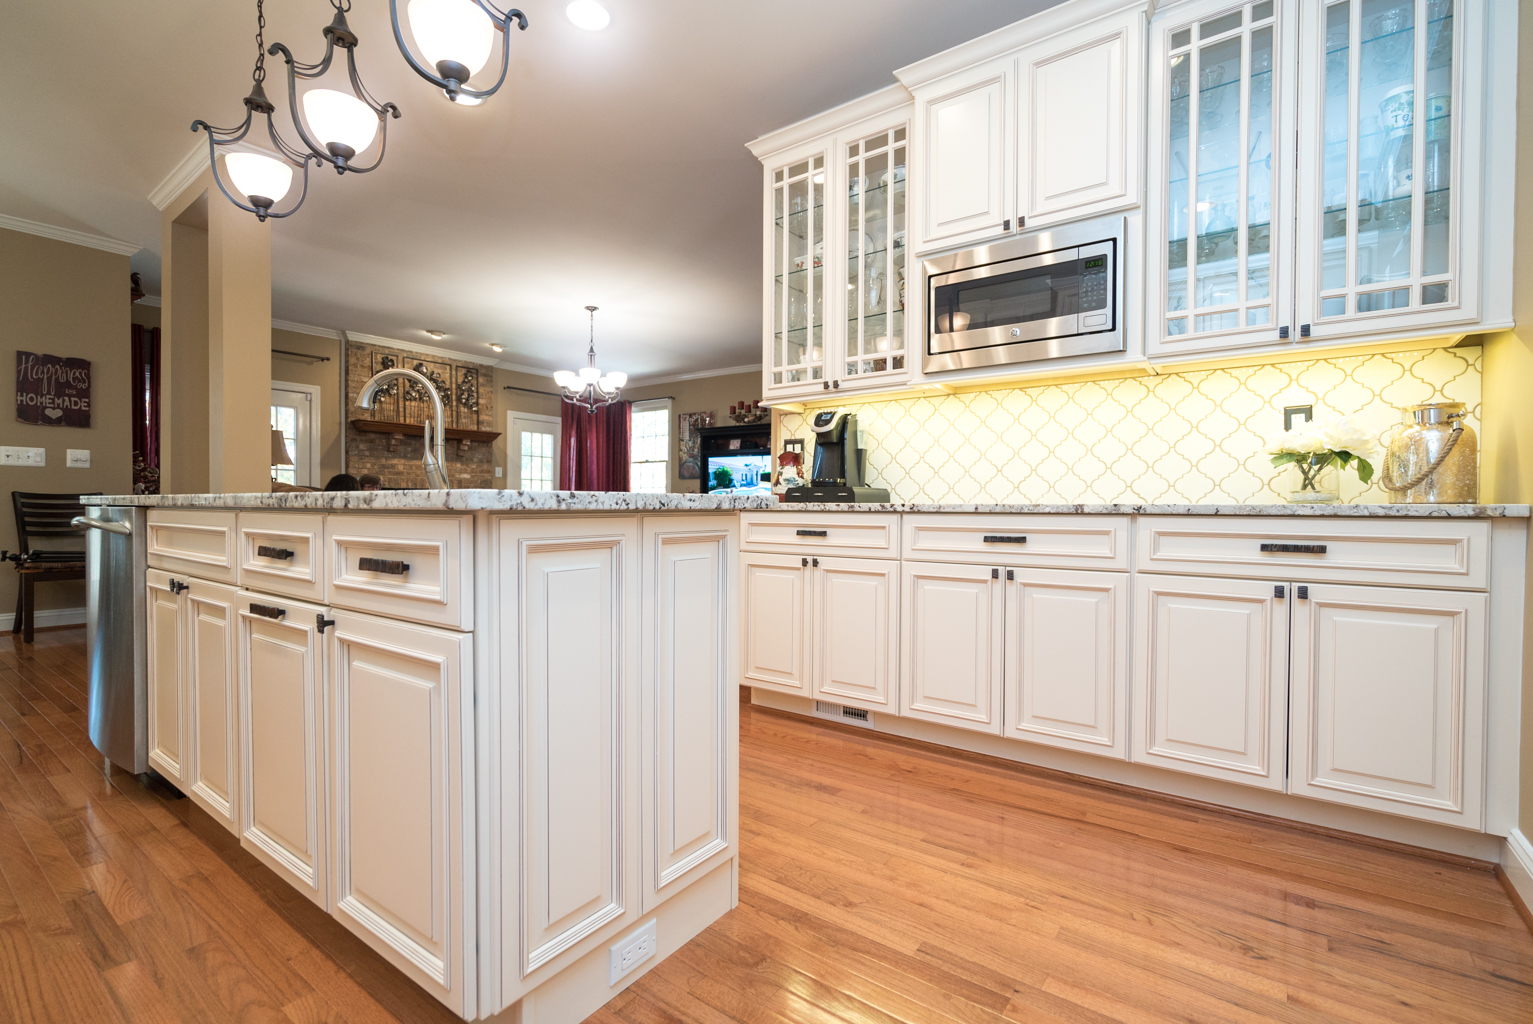 Bon This Dream Kitchen All Came Together For A Thrilled Charlene Who U201cu2026would  Happily Recommend USA Cabinet Store To Any Of My Friends And Family.u201d